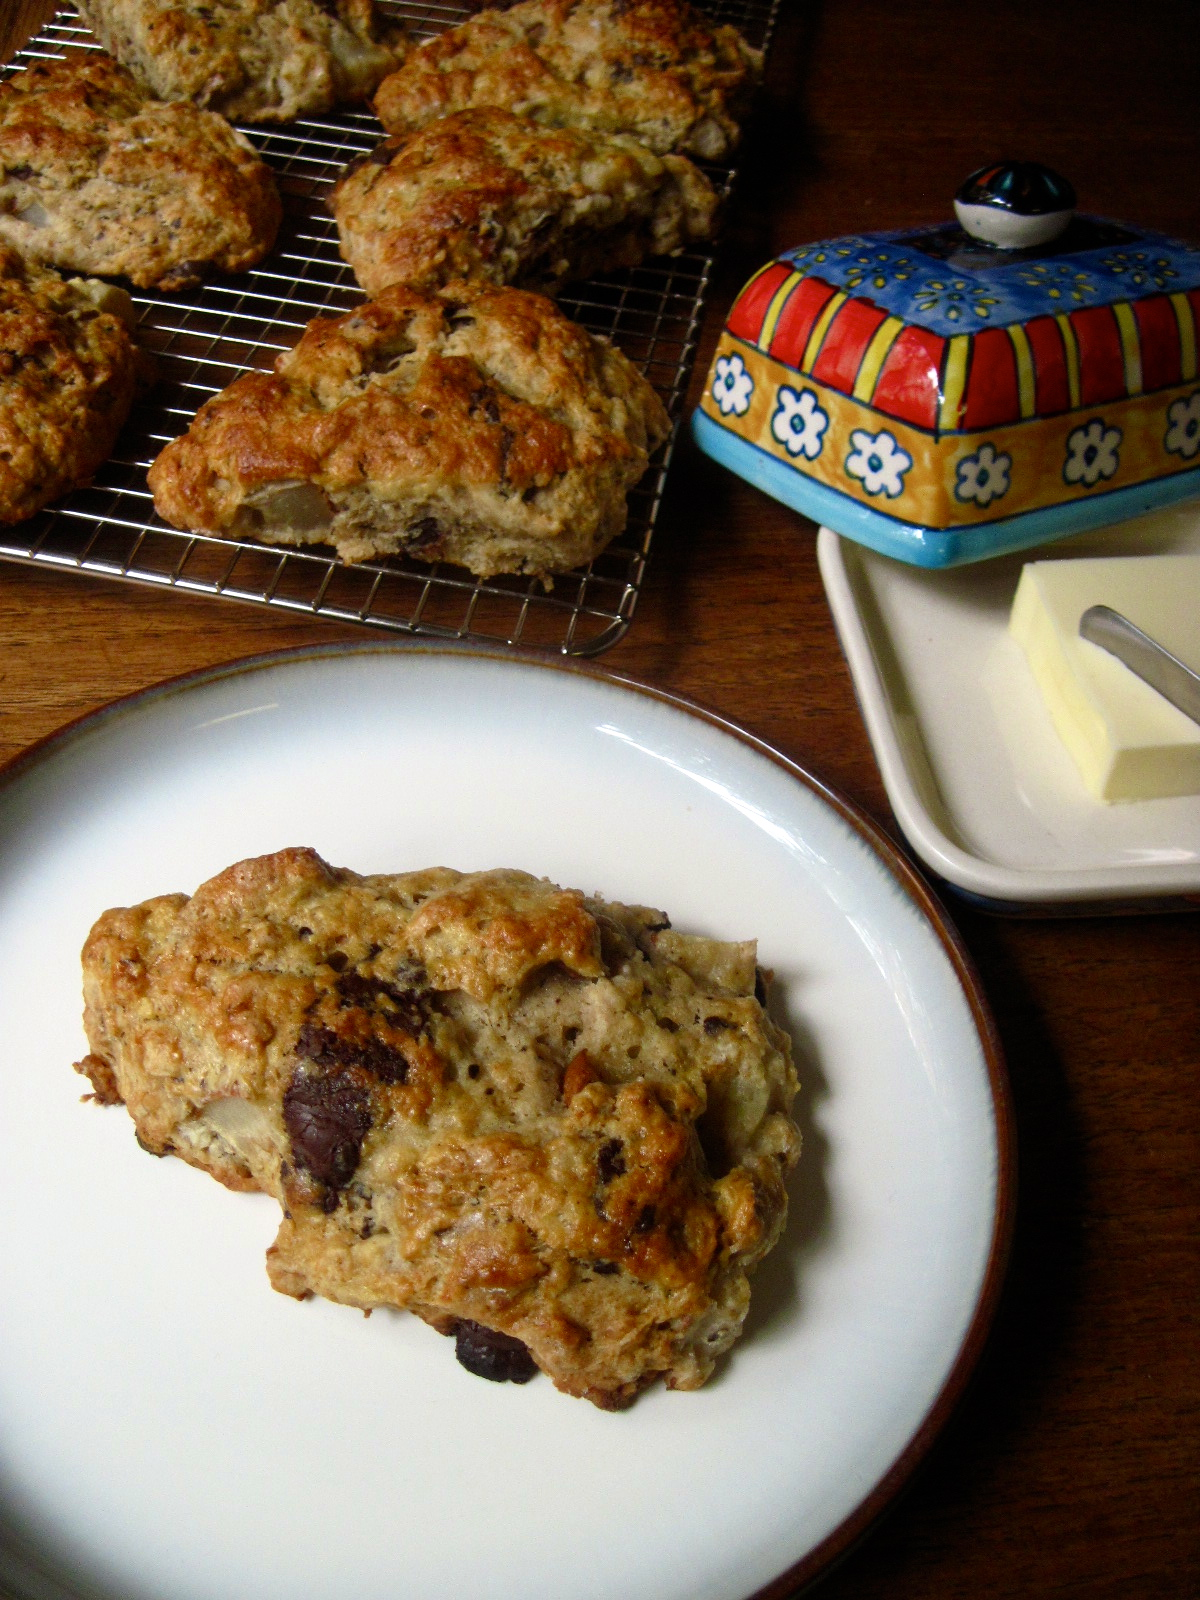 Roasted Pear and Chocolate Chunk Sourdough Scones